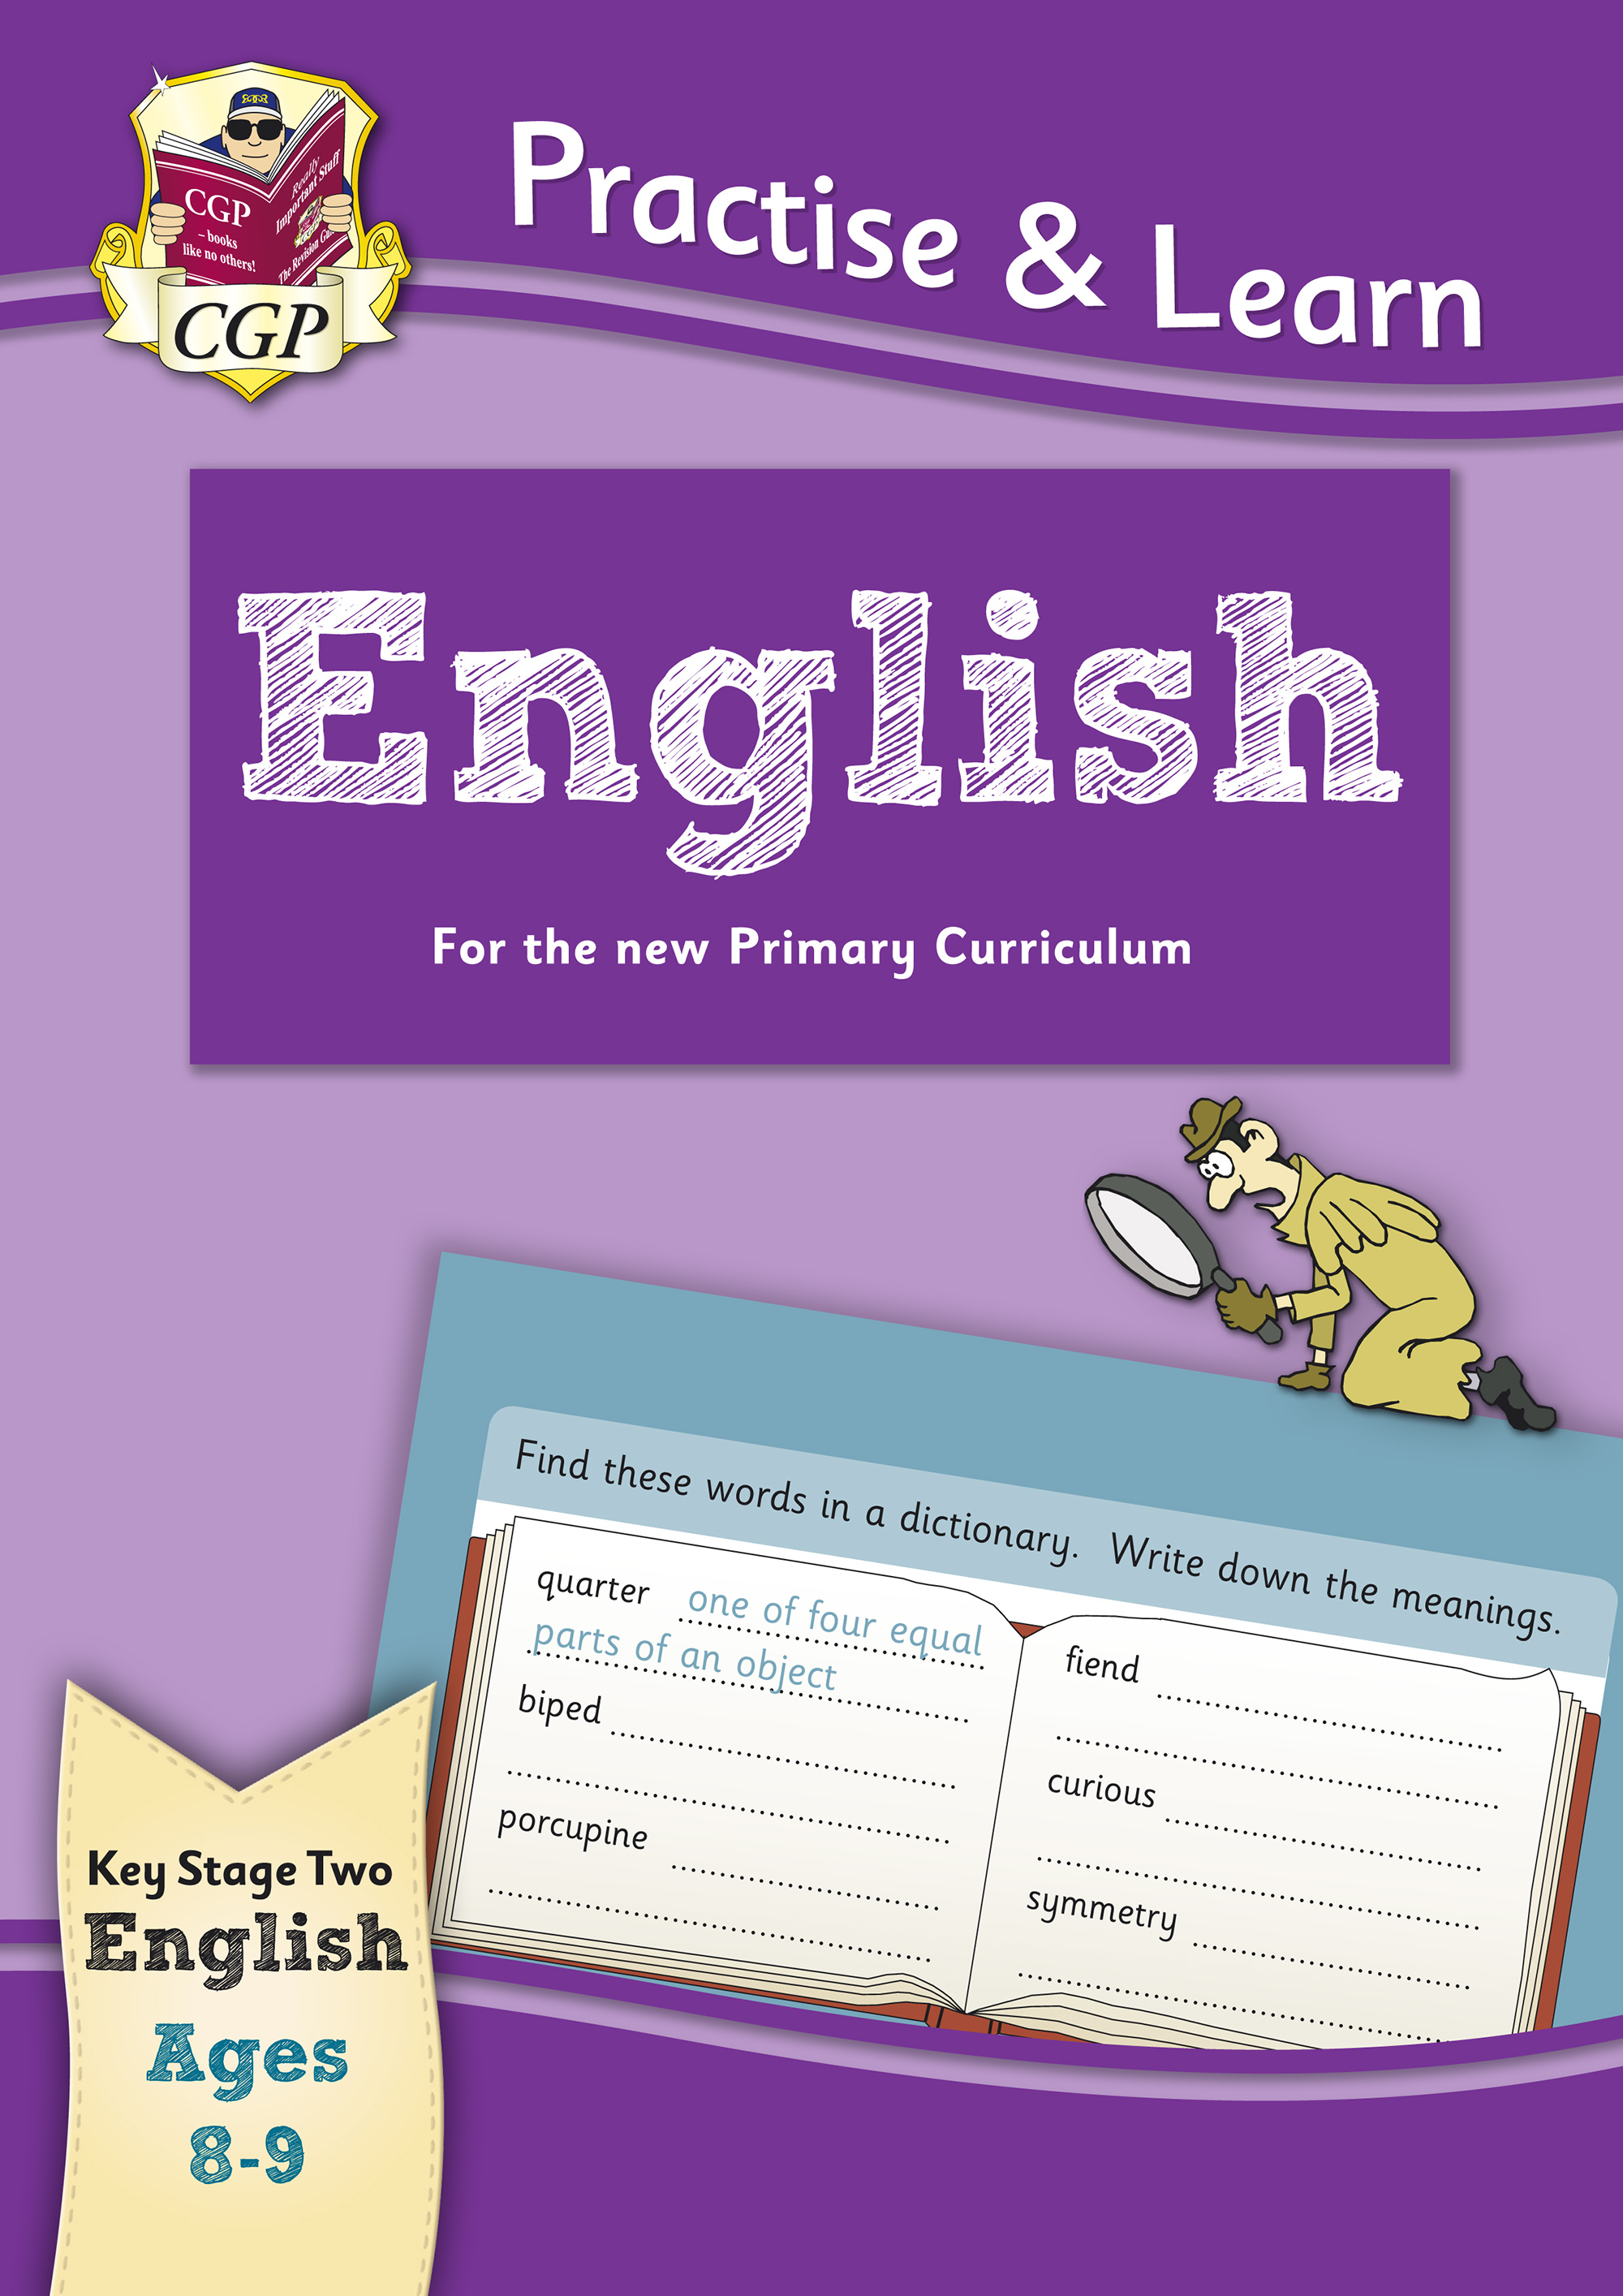 EP4Q22 - New Practise & Learn: English for Ages 8-9